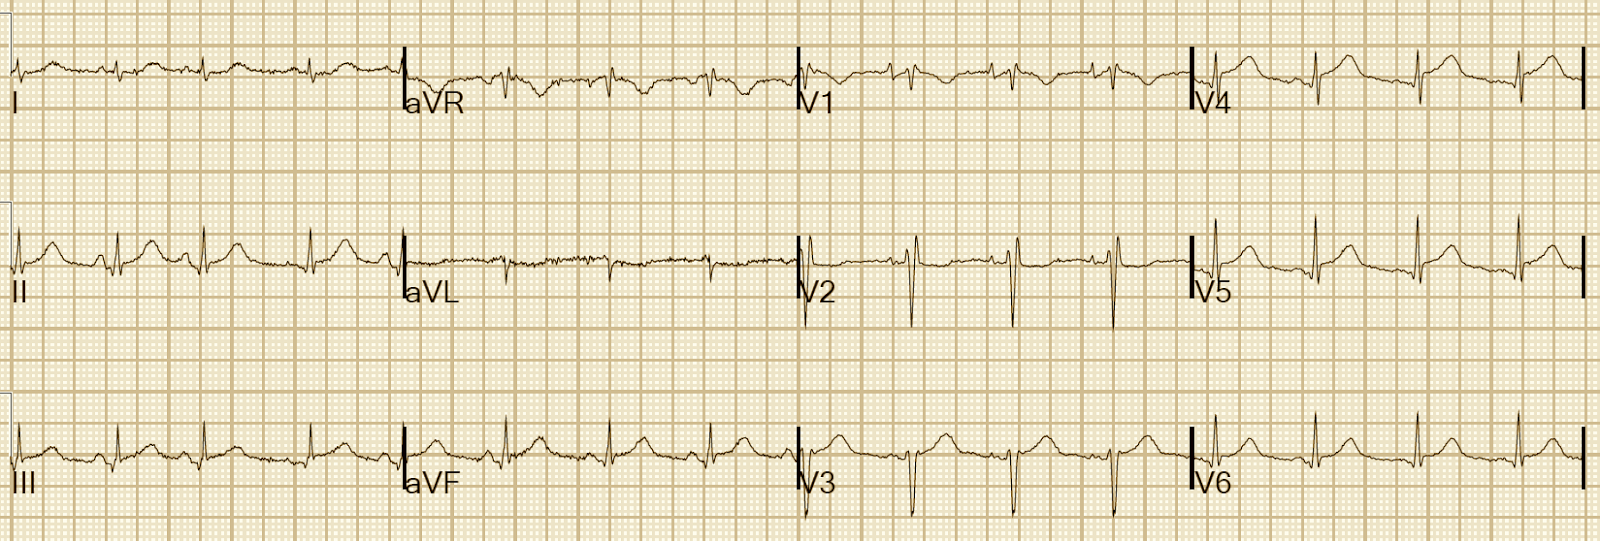 Dr. Smith's ECG Blog: Pericarditis? Or STEMI? The difference can ...